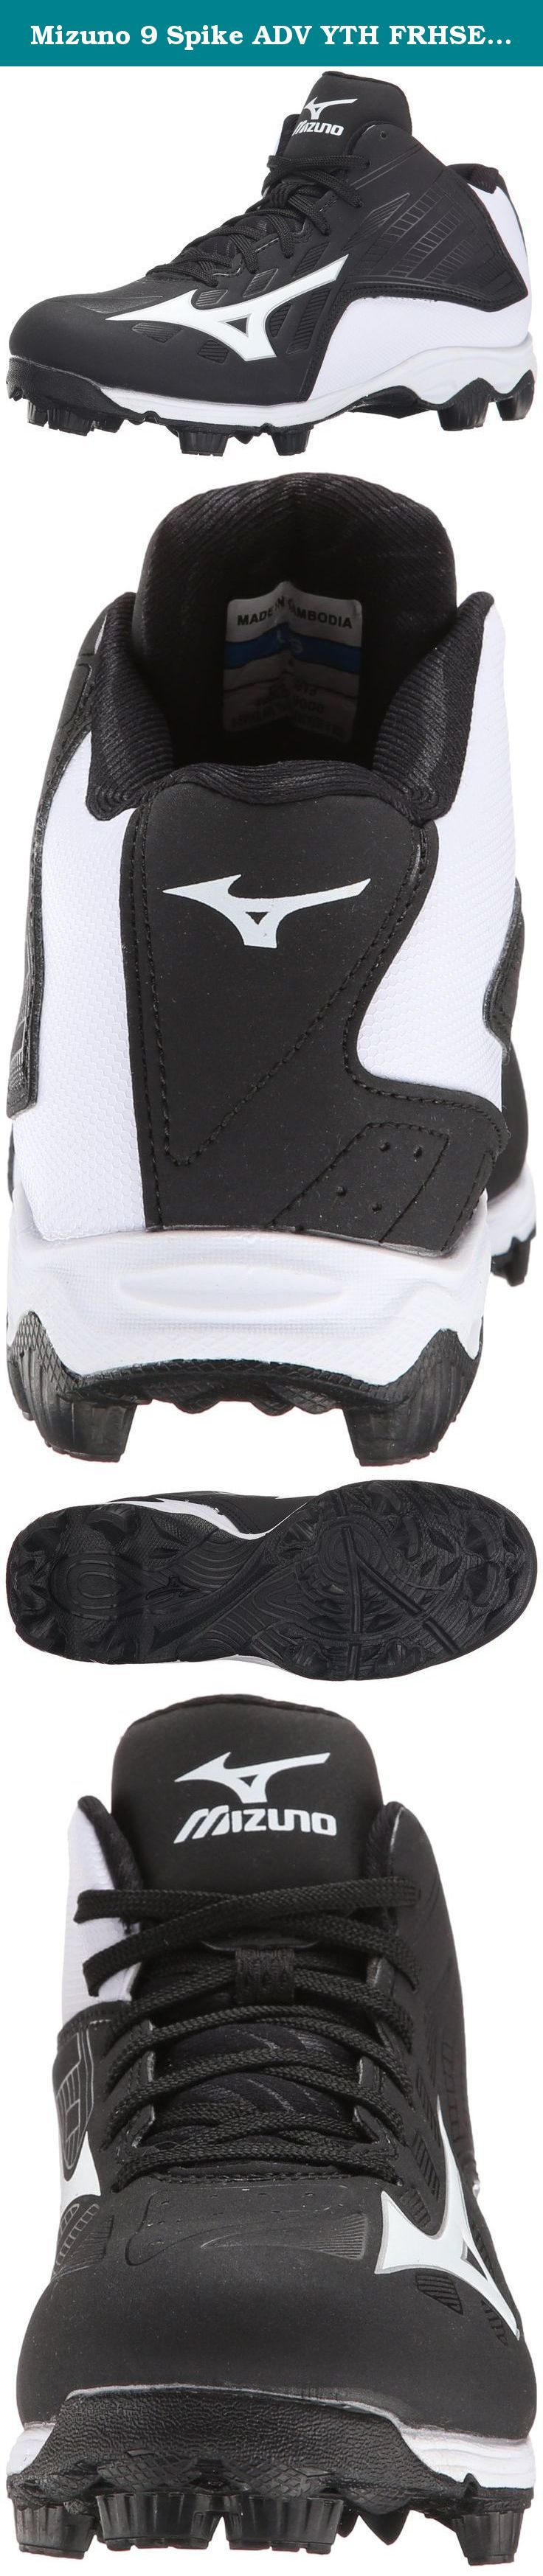 Mizuno 9 Spike ADV YTH FRHSE8 MD BK-WH Youth Molded Cleat (Little Kid/Big Kid). 9-Spike Advanced outsole for superior traction and comfort. Rubber studs provide comfort and durability for all field types. Full length mid-sole for maximum comfort. Style: 320506 .